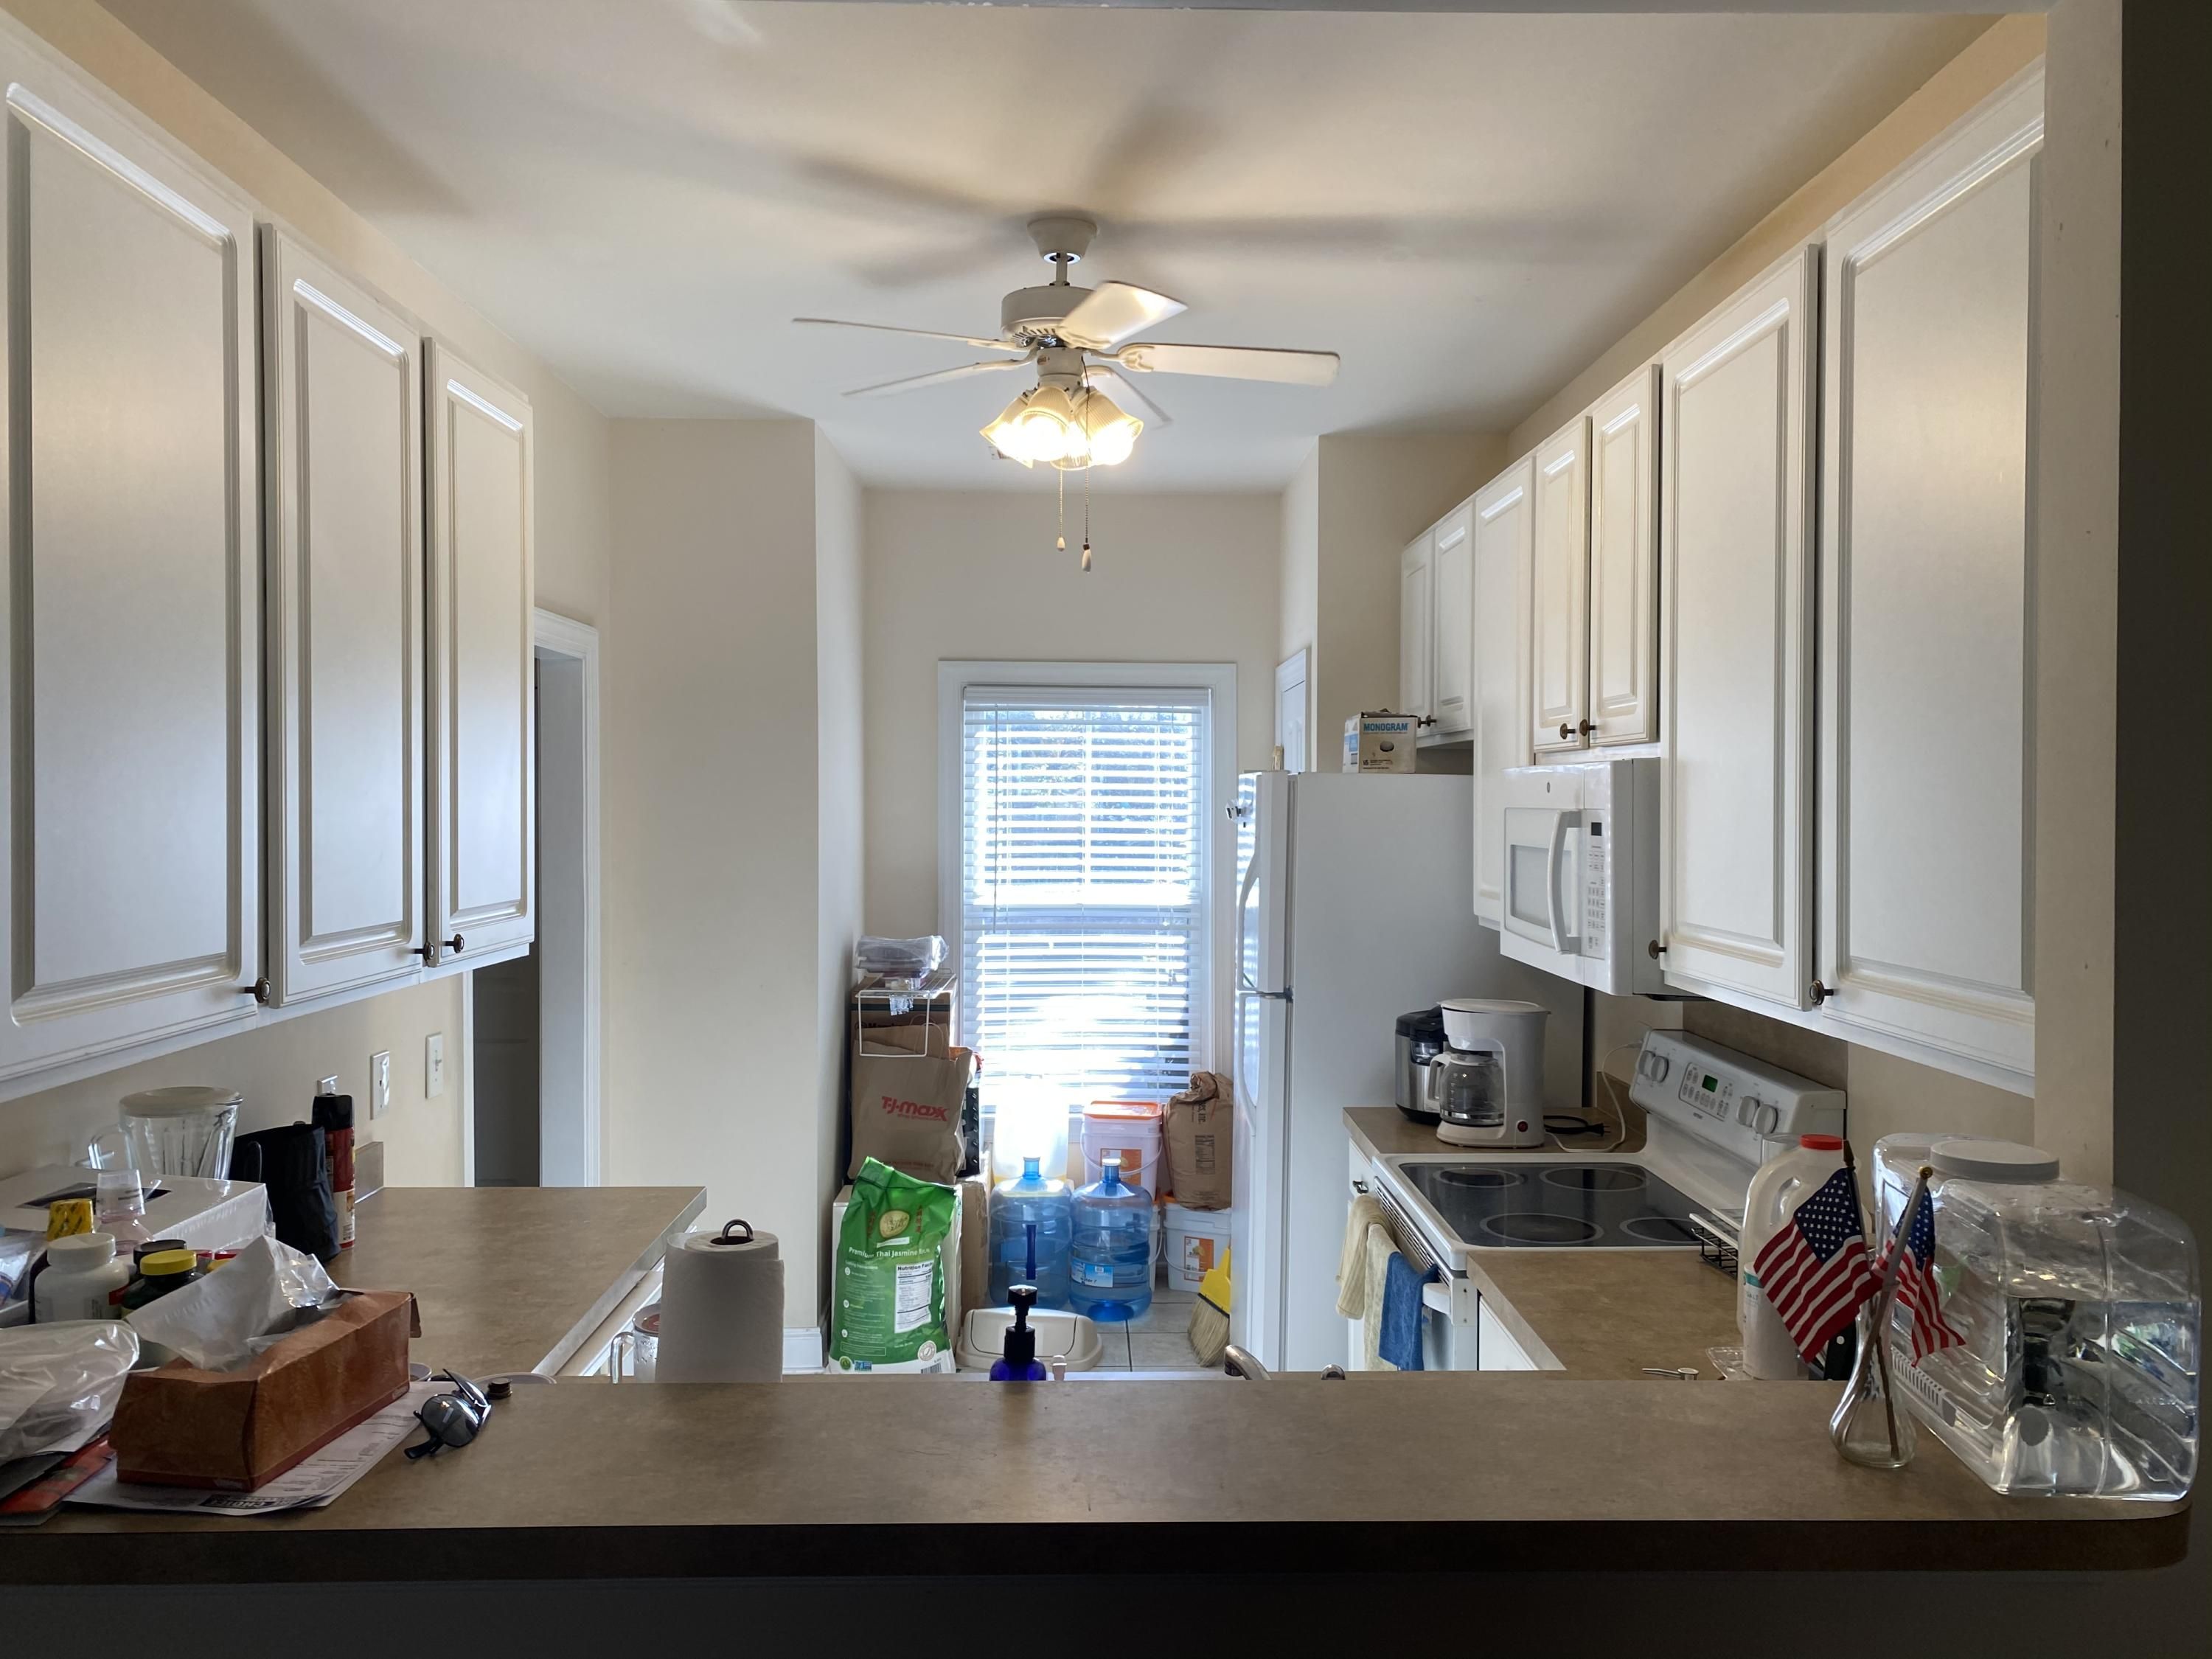 The Reserve at Wando East Homes For Sale - 1697 Lauda, Mount Pleasant, SC - 13